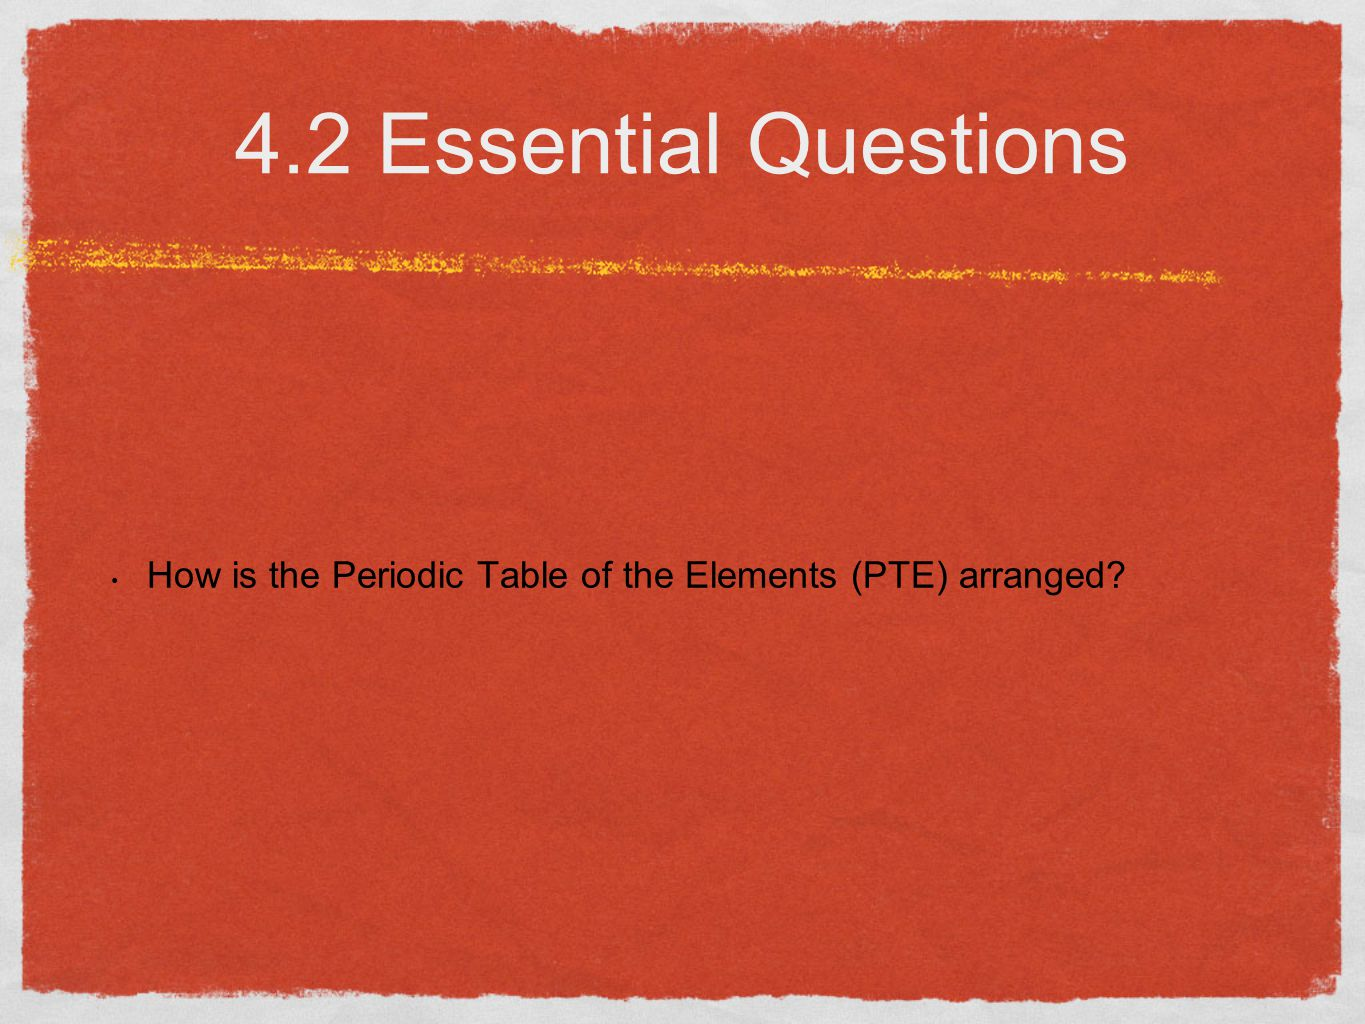 4.2 Essential Questions How is the Periodic Table of the Elements (PTE) arranged